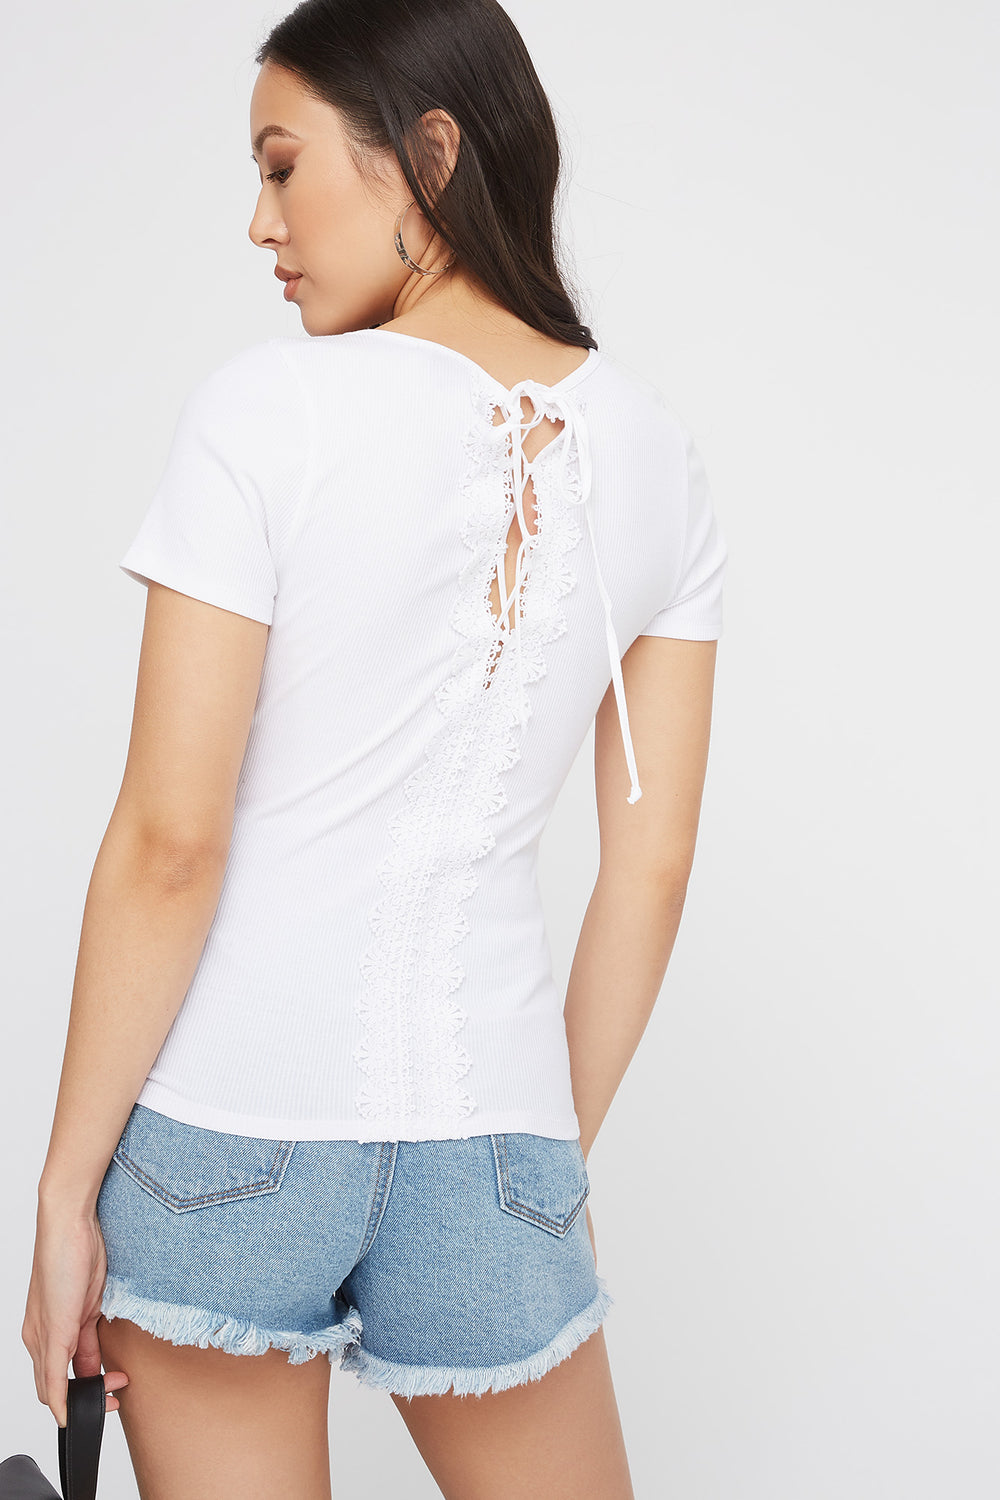 Ribbed Crochet Lace-Up Back T-Shirt White